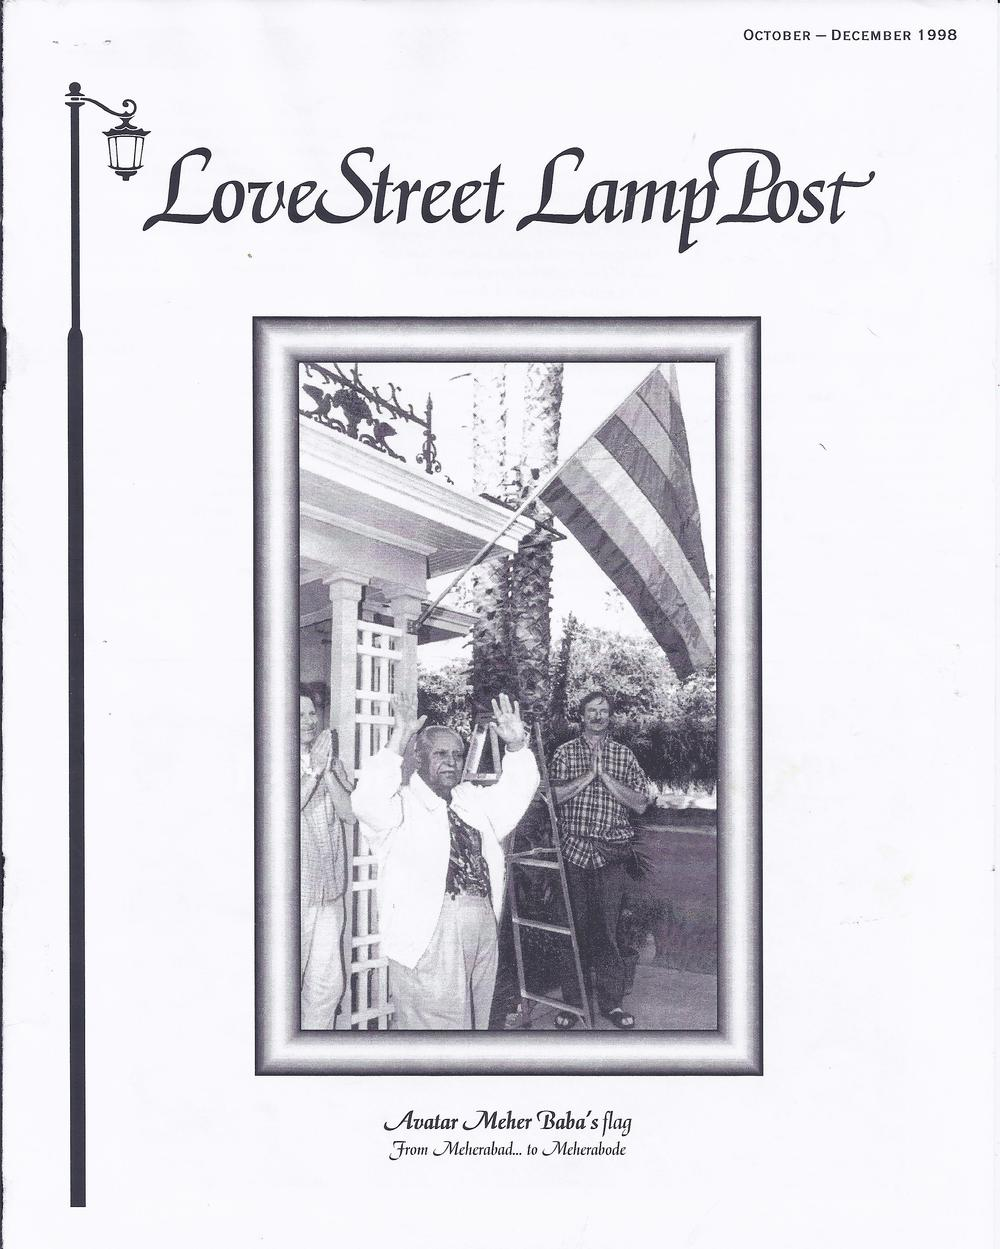 COVER OF THE LOVE STREET LAMP POST issue from which this article is reprinted. Meher Baba's disciple Bhau Kalchuri - who encouraged this Young Adult Sahavas - is pictured.